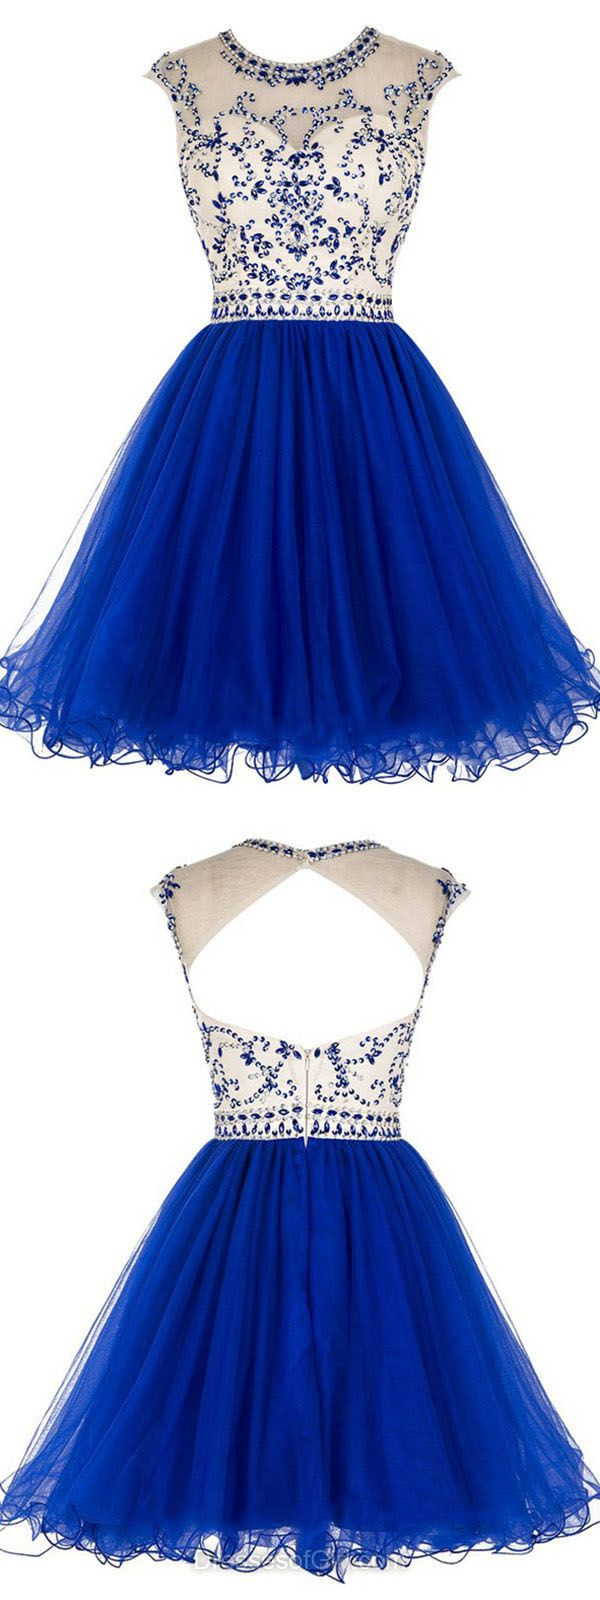 Blue Homecoming Dresses, Short Prom Dresses, Beading Party Gowns, Open Back Formal Dress, Popular Cocktail Dress